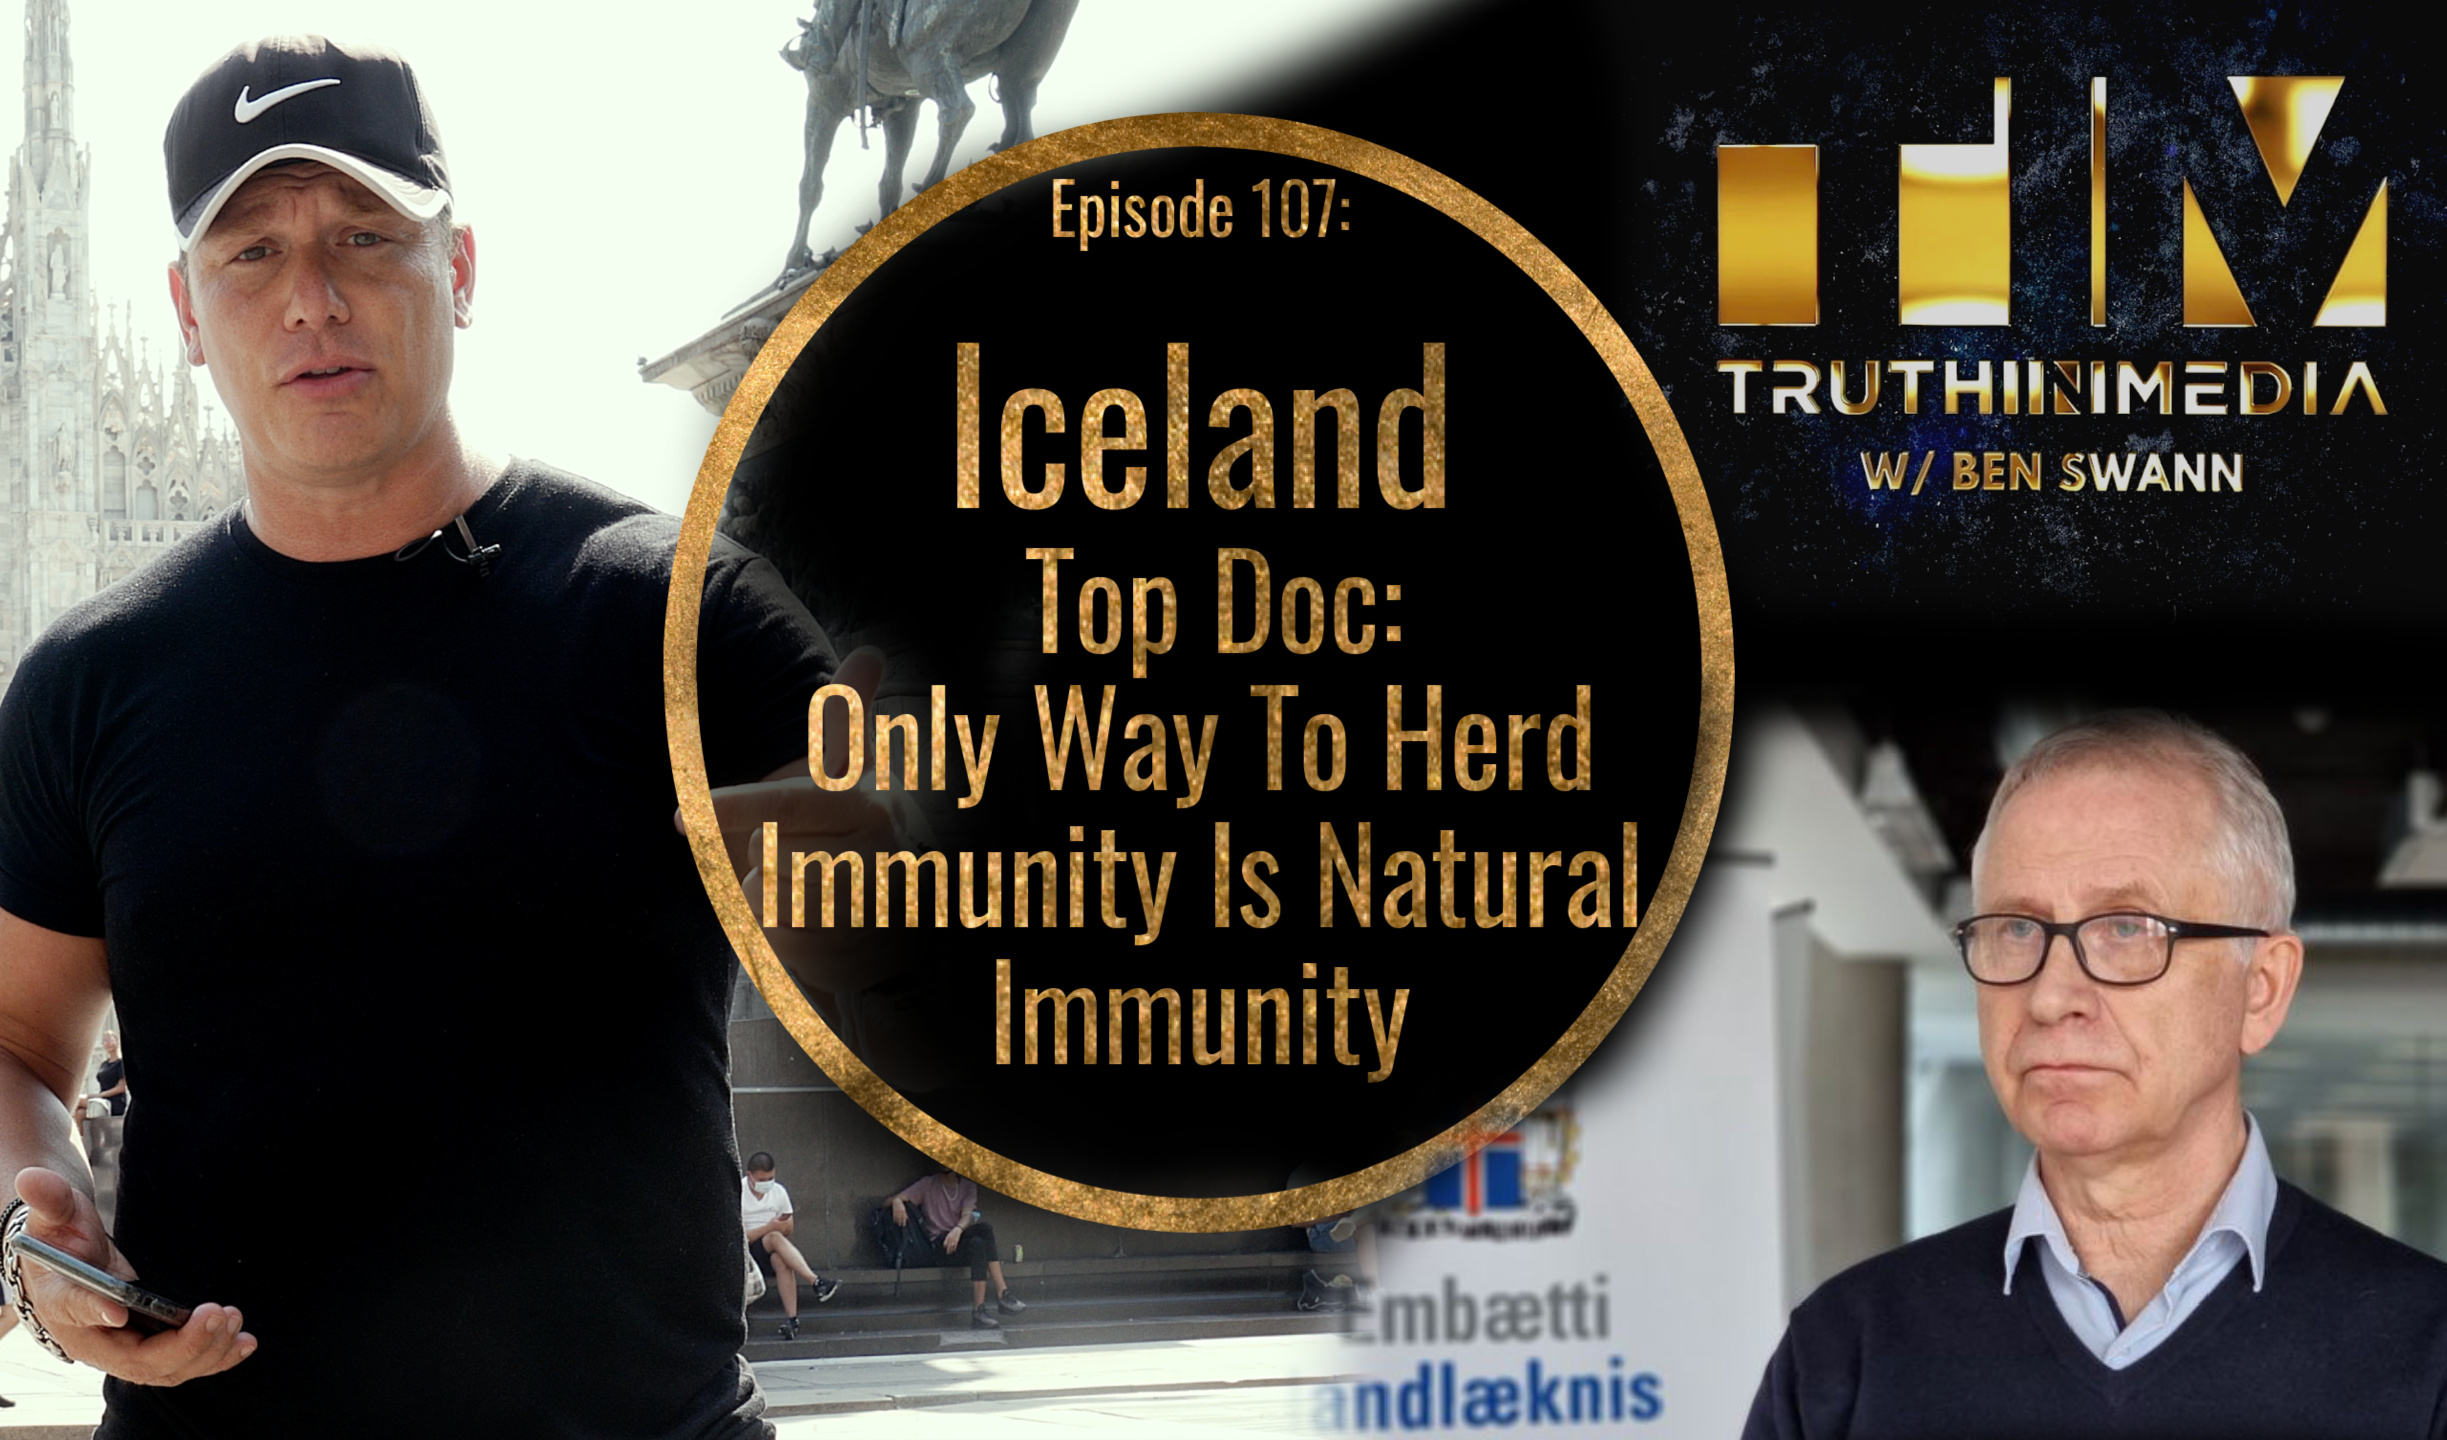 Iceland Top Doc Admits Natural Immunity Only Way To Herd Immunity